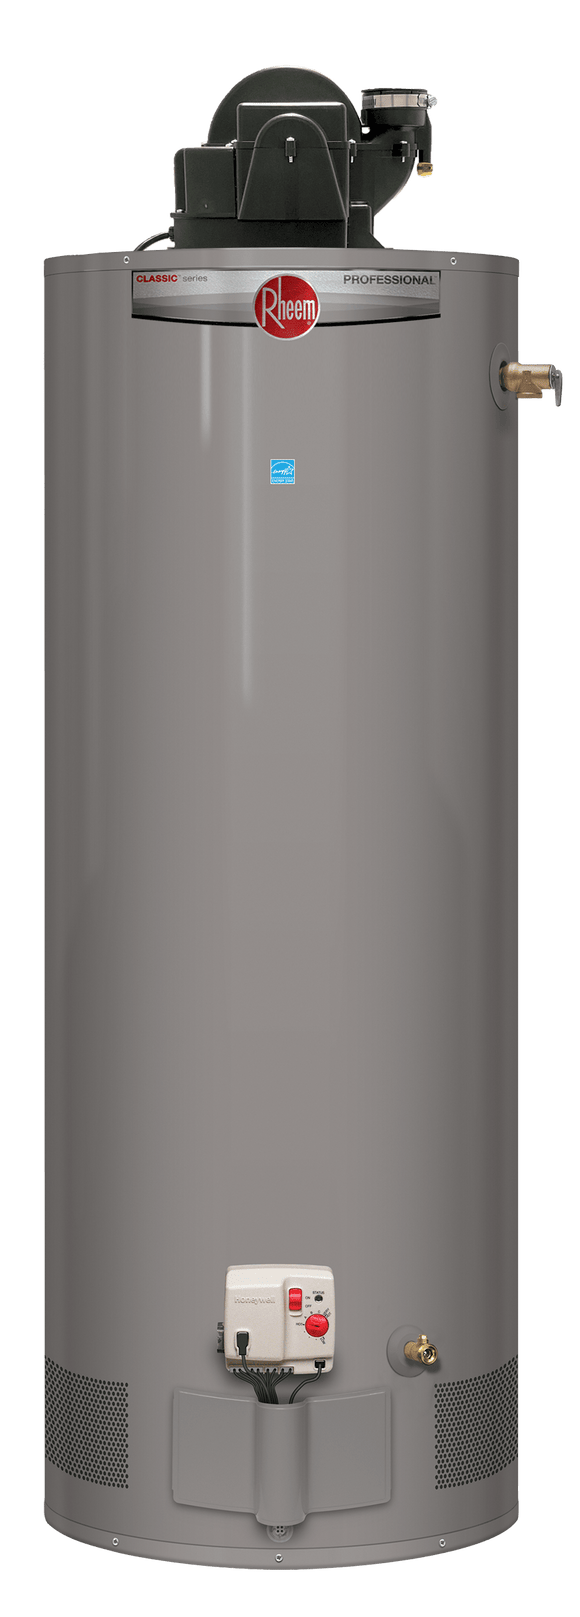 Rheem PROG40-40N RH67 PDV Professional Classic 40 Gallon Tall Residential 6 Year 40,000 BTU Natural Gas Power Direct Vent Water Heater - wholesalewaterheater